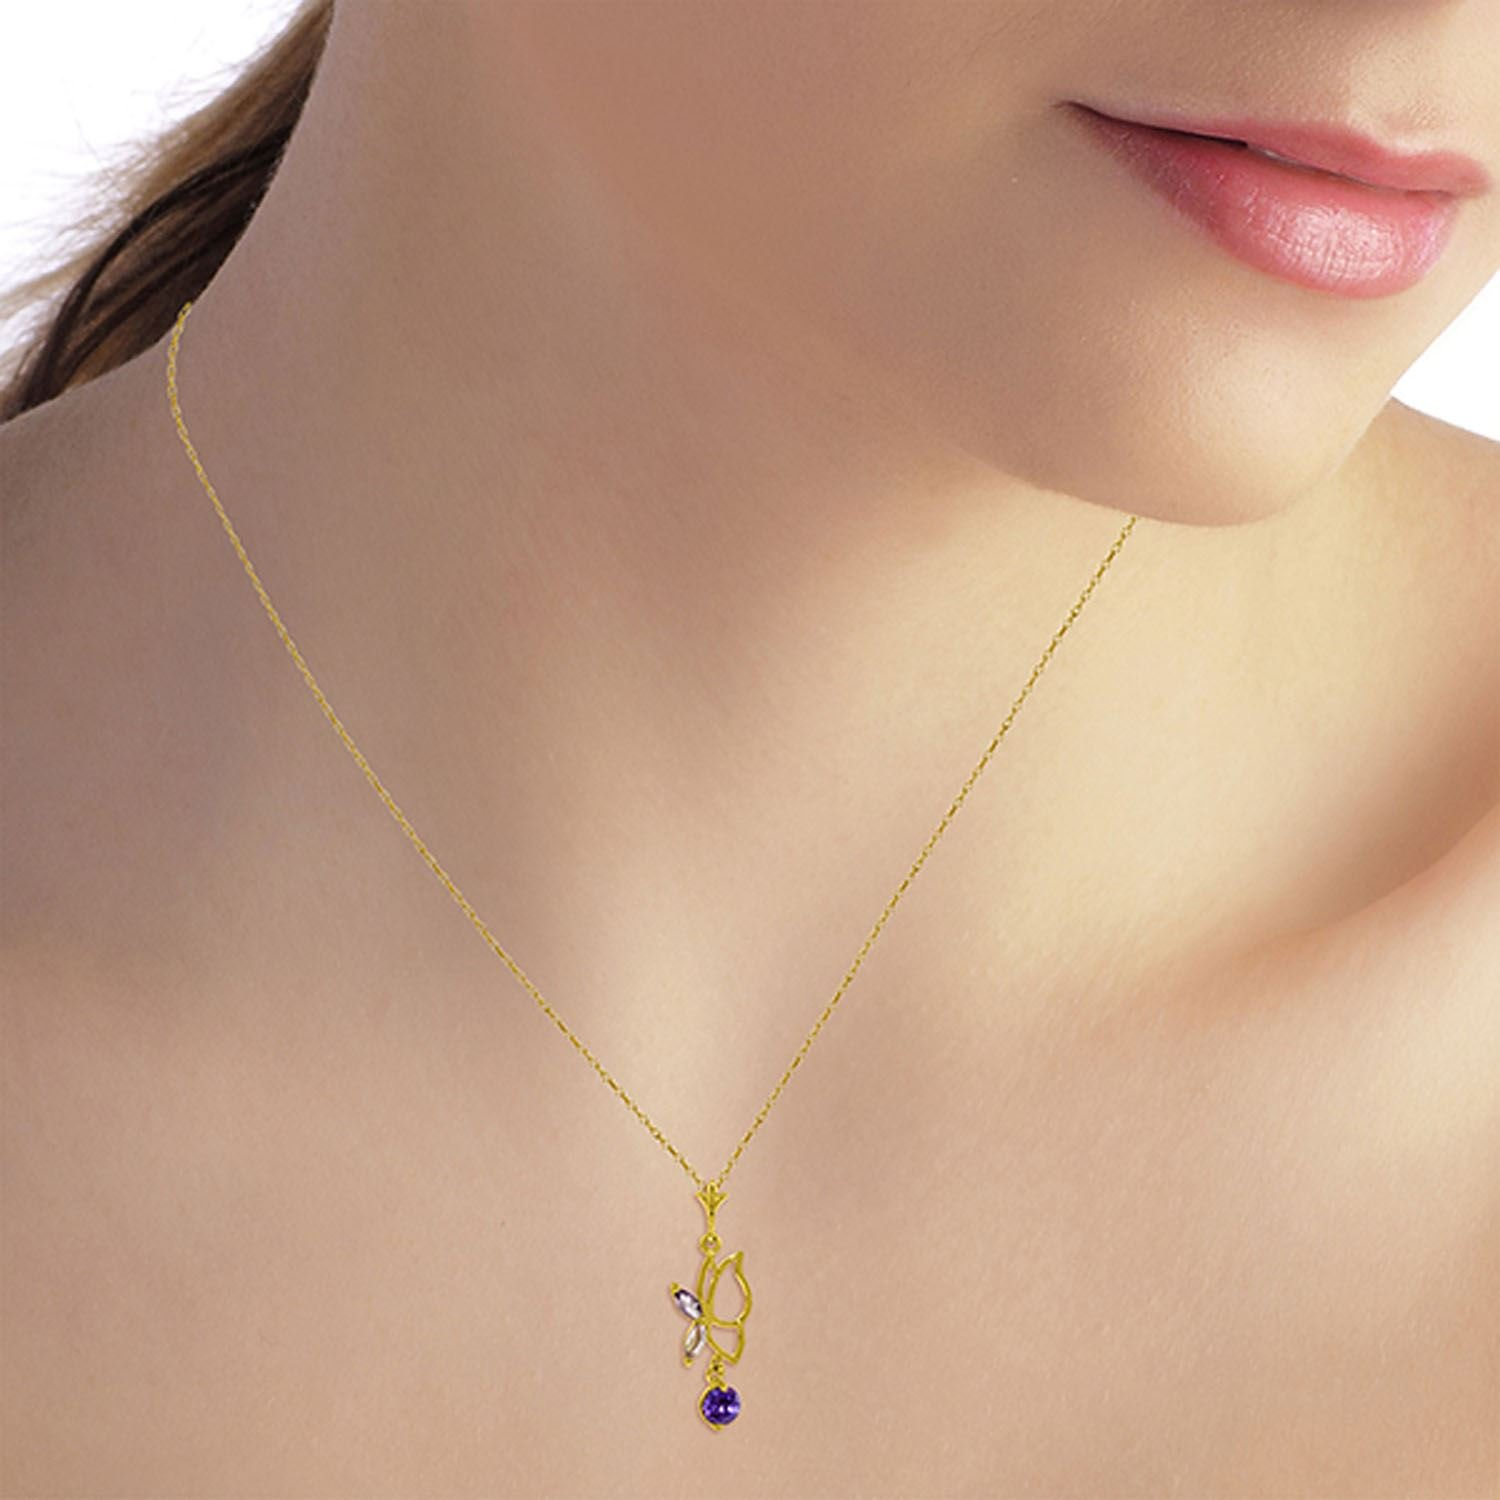 ALARRI 0.4 CTW 14K Solid Gold Flutter Fly Amethyst Necklace with 24 Inch Chain Length